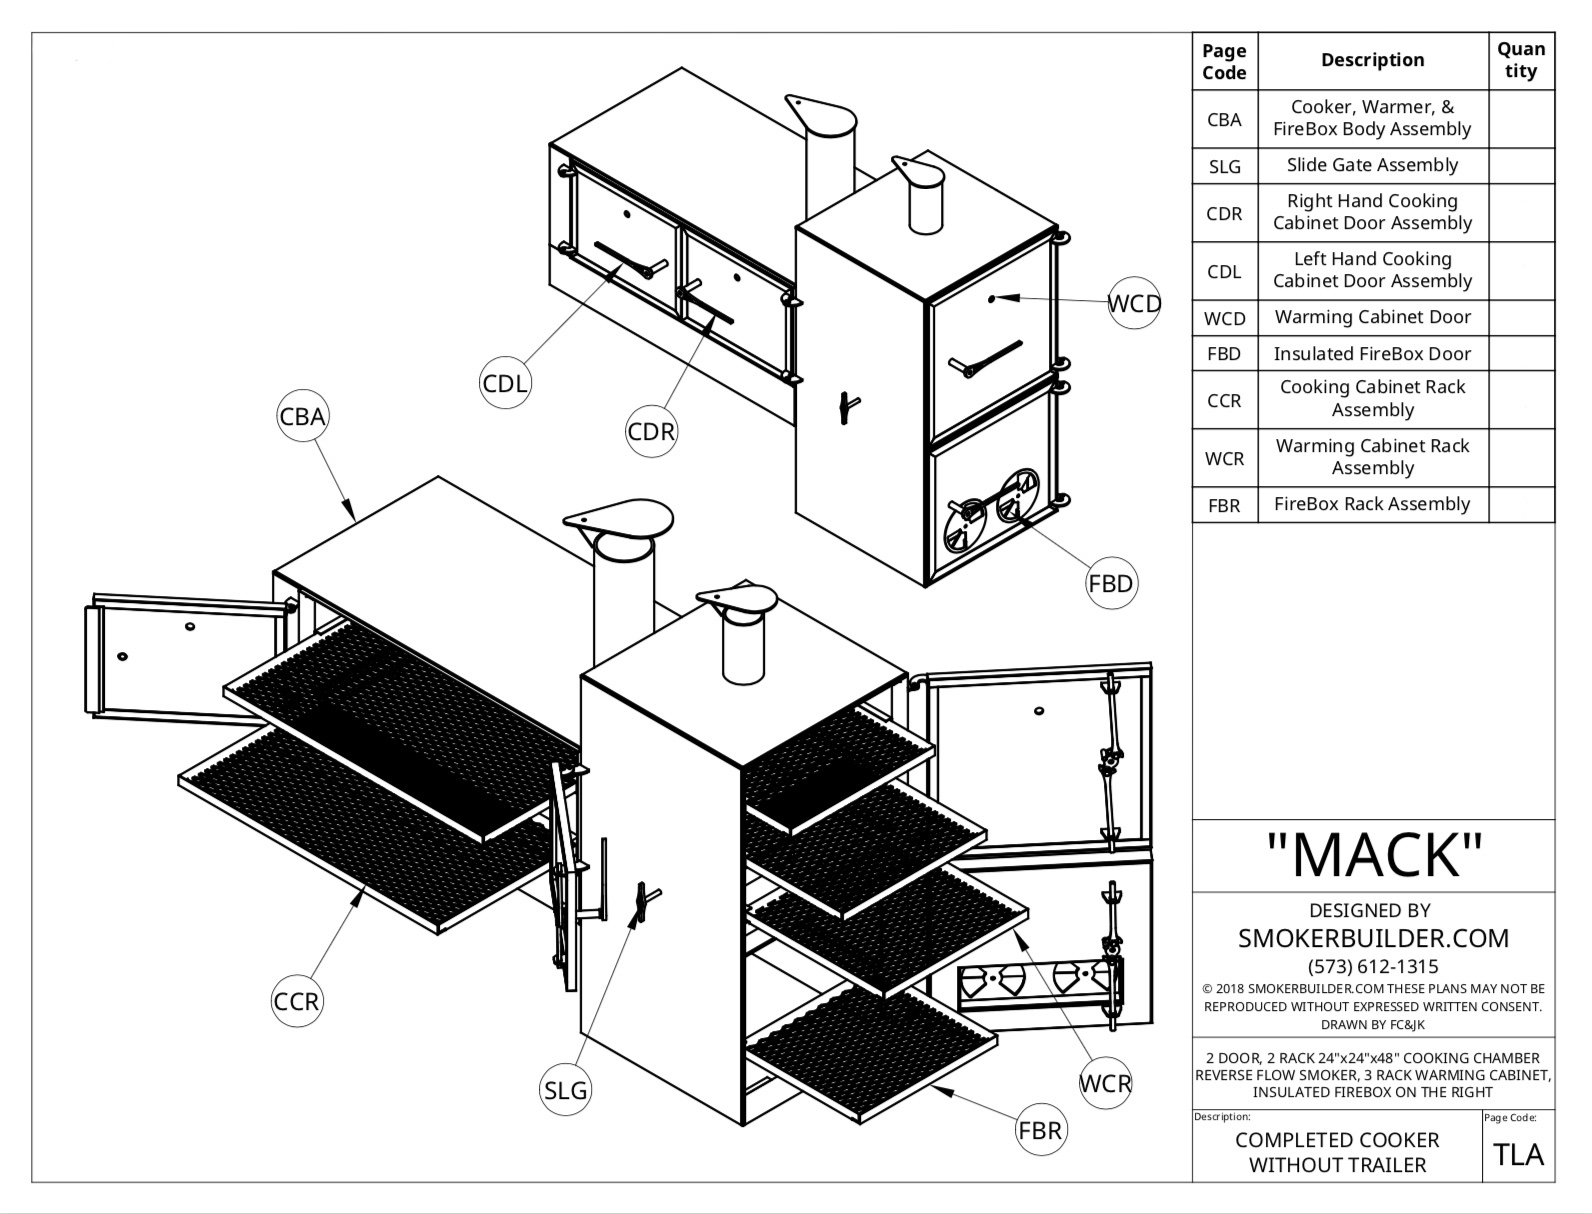 Mack Smoker Plans Now Available